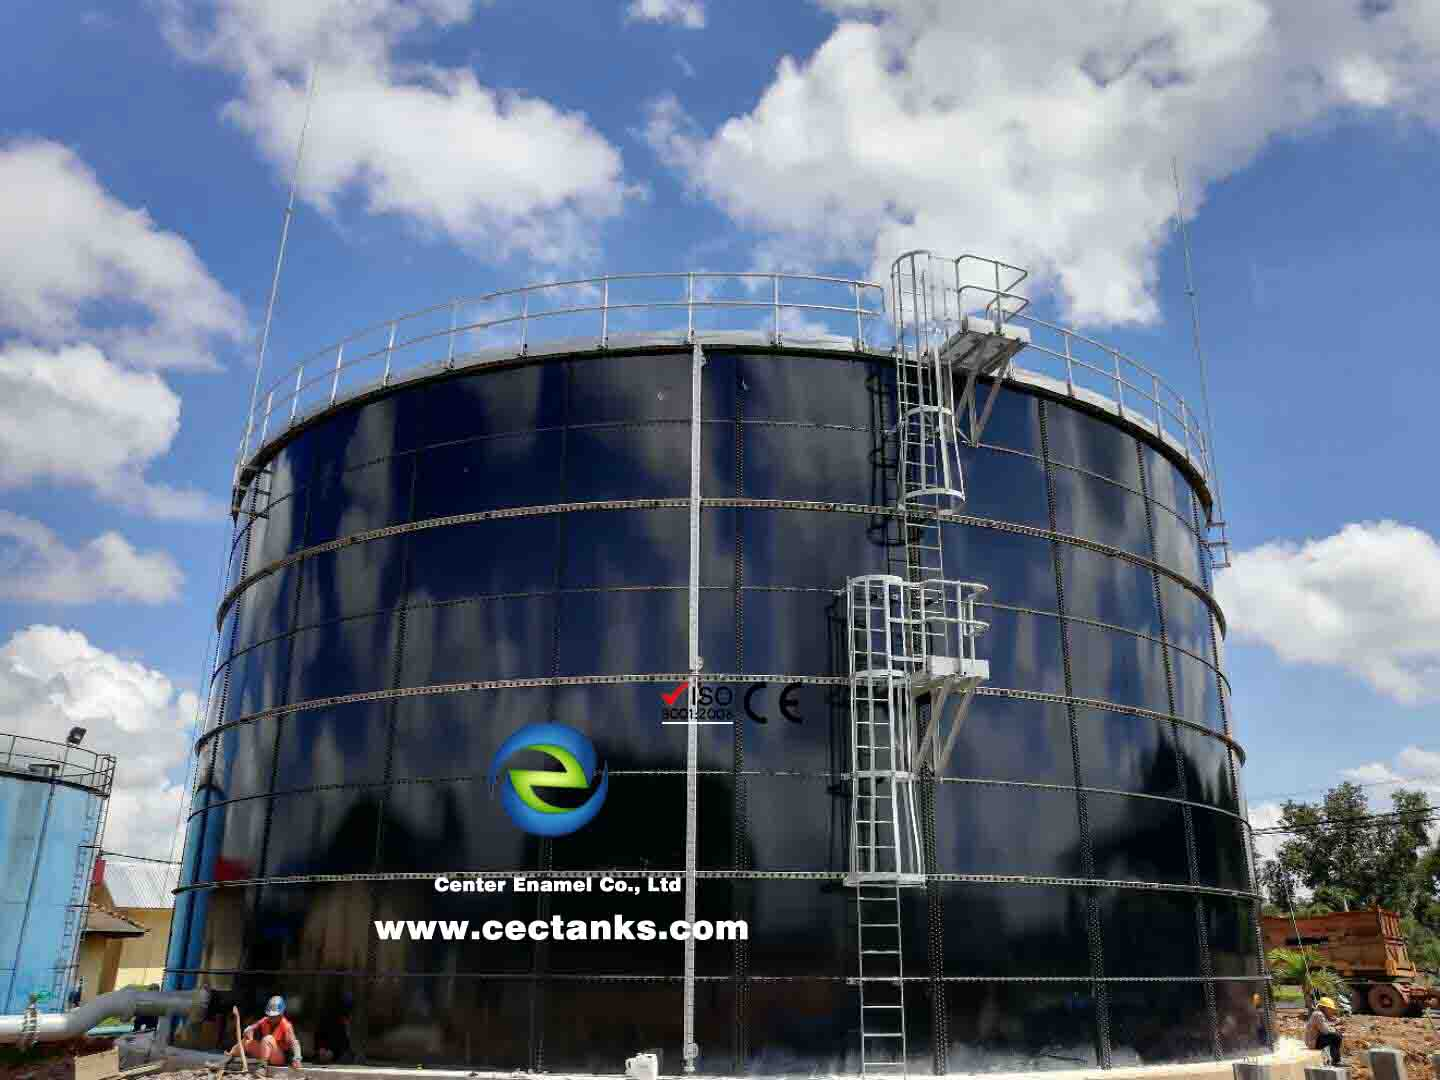 Wastewater Holding Tank Manufacturer with 30 Years In Water Tanks Design & Manufacture